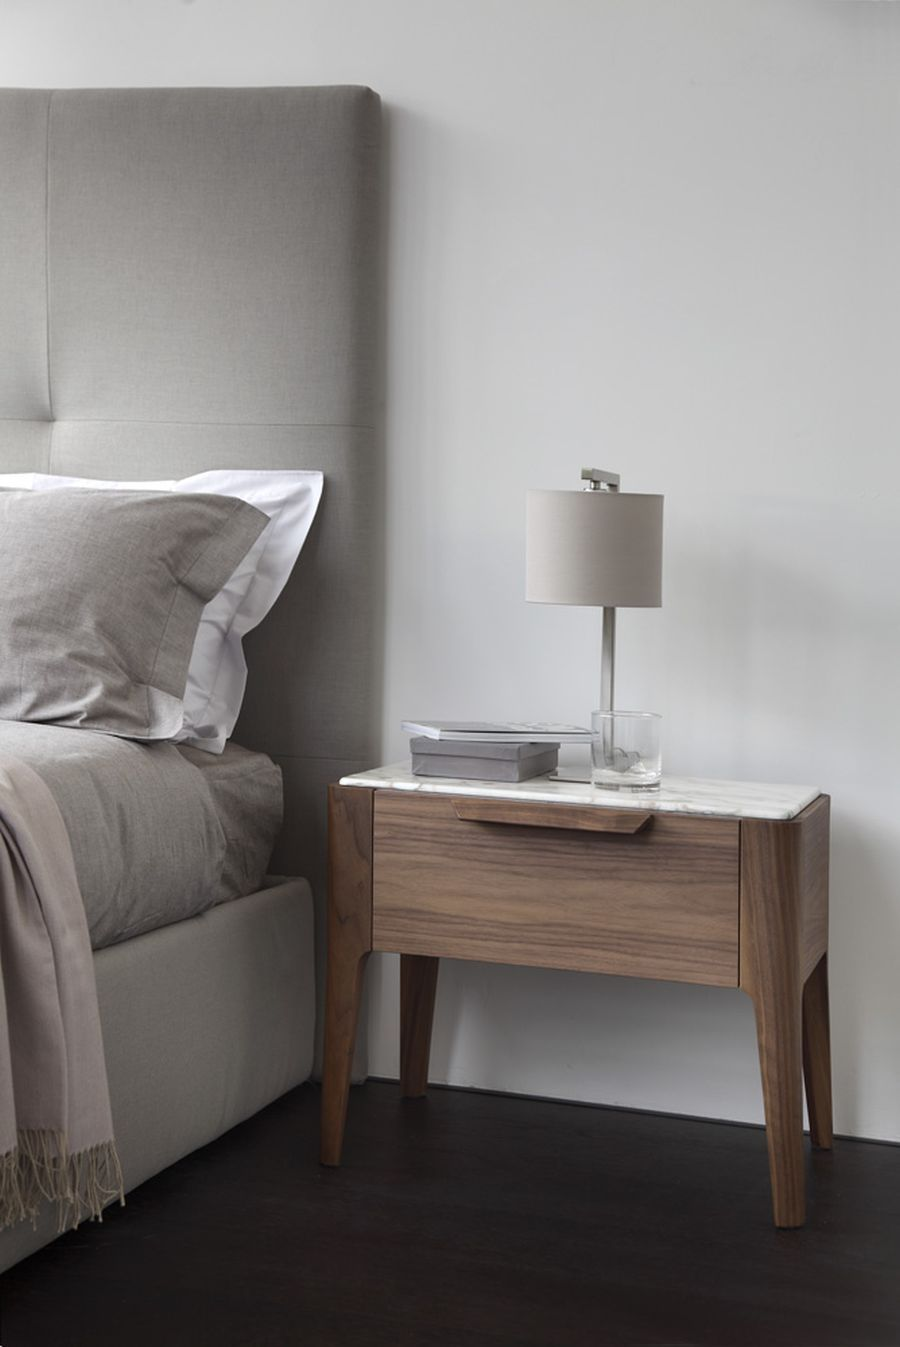 Modern bedside table ideas - Sophisticated And Modern Nightstands With A Scandinavian Feel